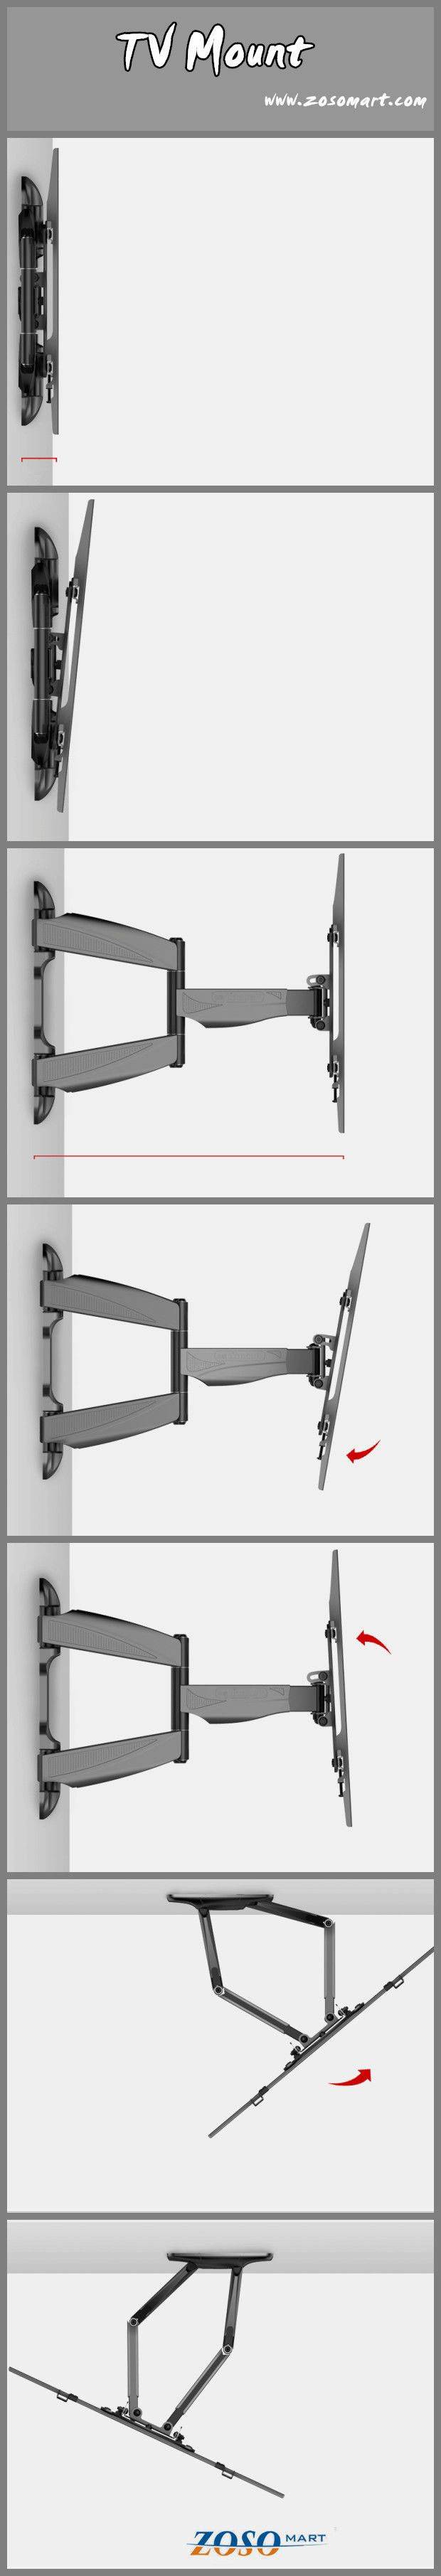 TV mount: it can tilt, stretch out and draw back, swing from side to side. Allow you to watch TV in any comfortable posture. http://www.zosomart.com/tripods-tv-accessories/tv-mount/articulating-dual-arm-swivel-titl-lcd-led-tv-wall-mount-37-42-47-50-55-60-65.html